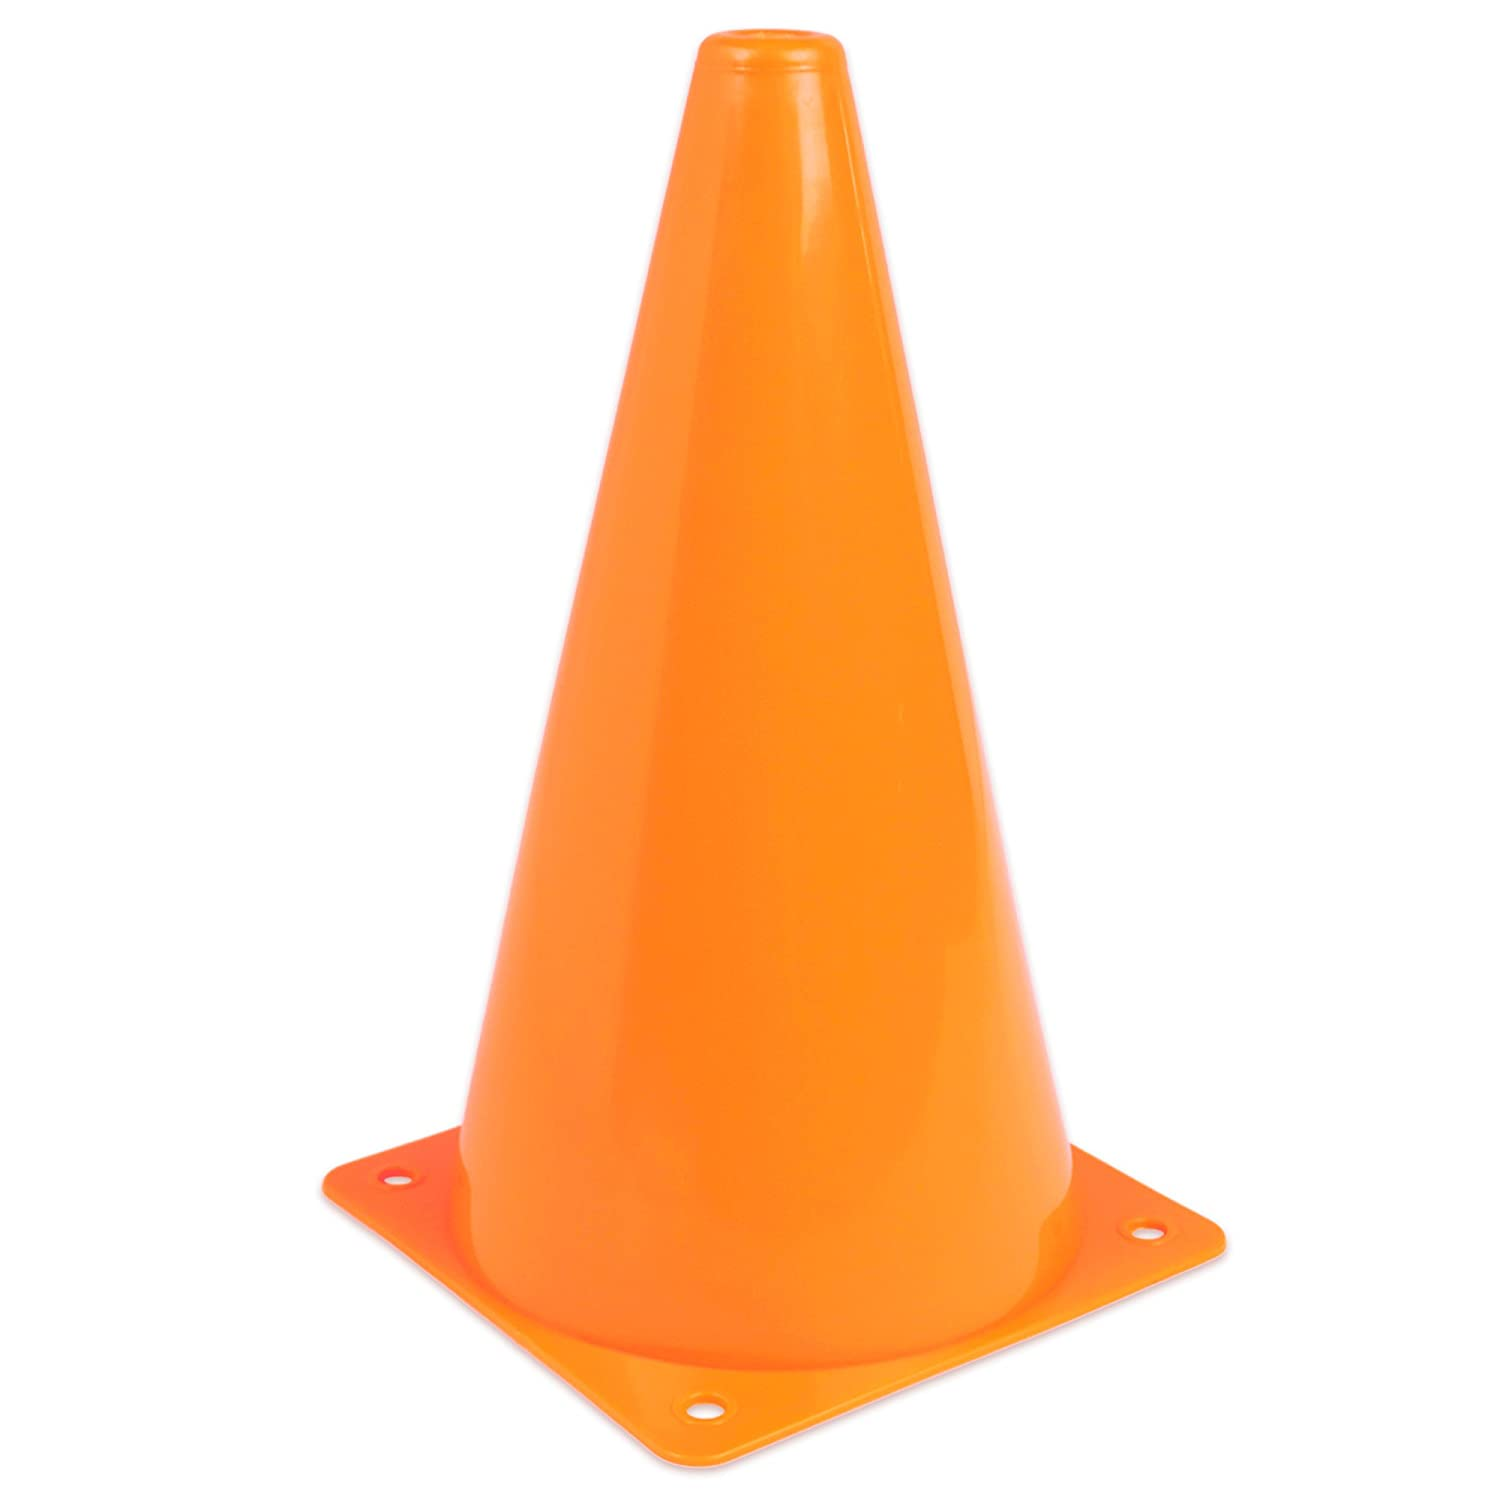 AGORA 9 Practice Cones - Bright Neon Orange - Set of 10